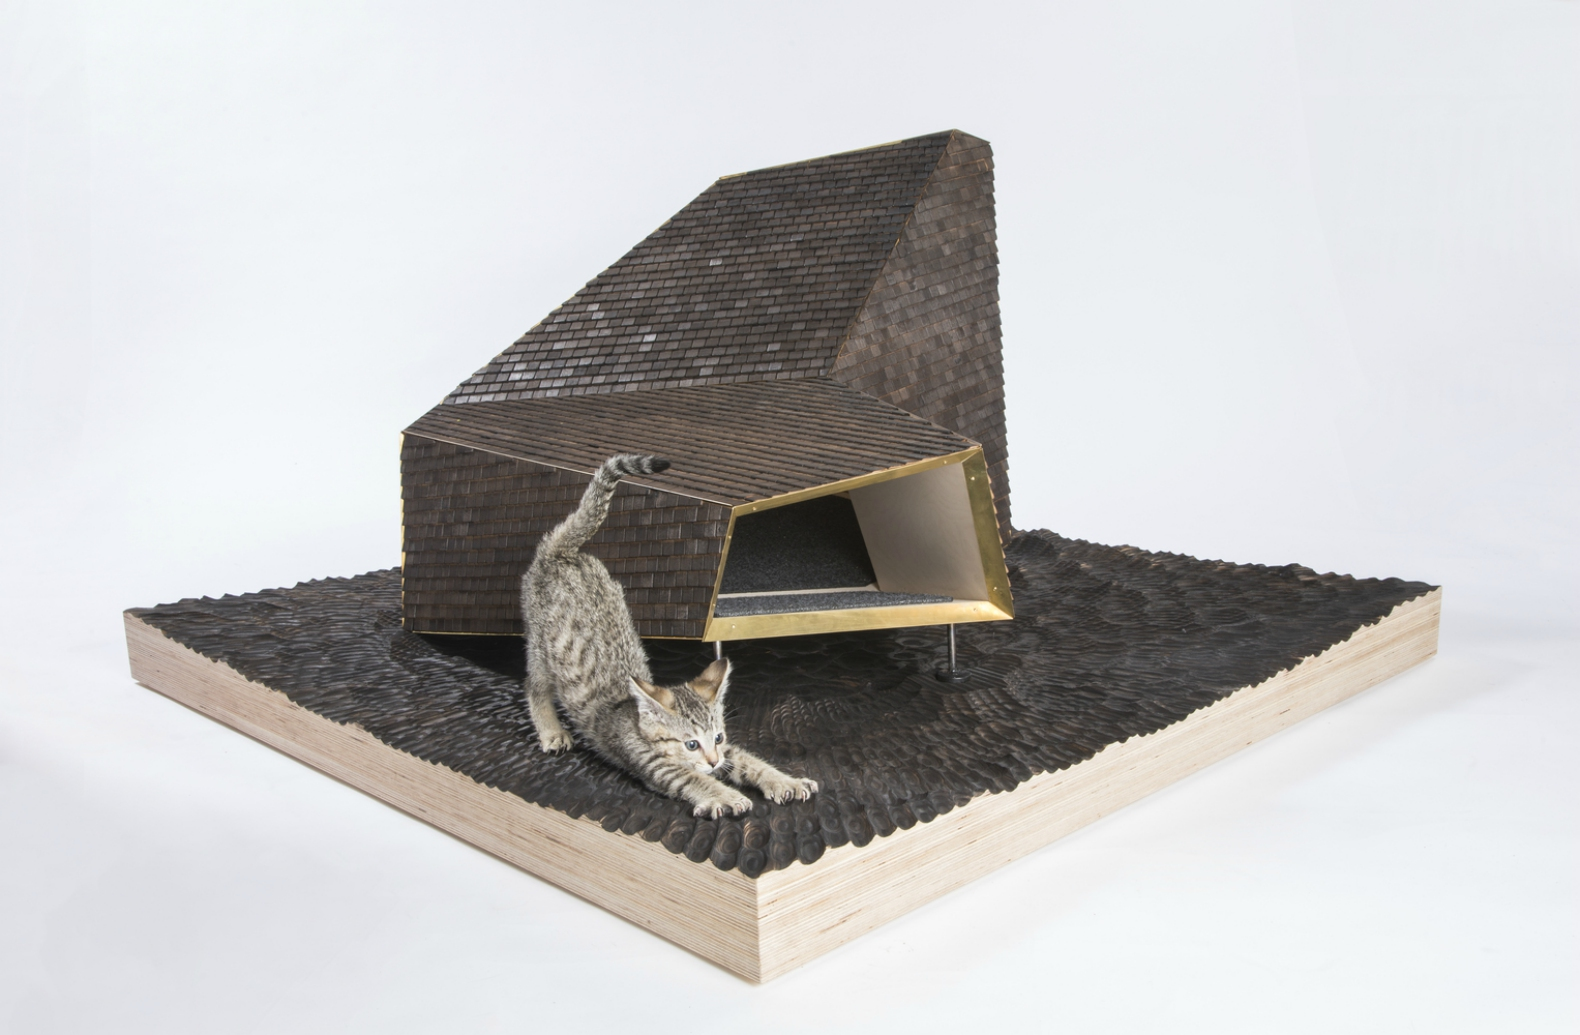 Architects Design Incredible Cat Shelters To Raise Money